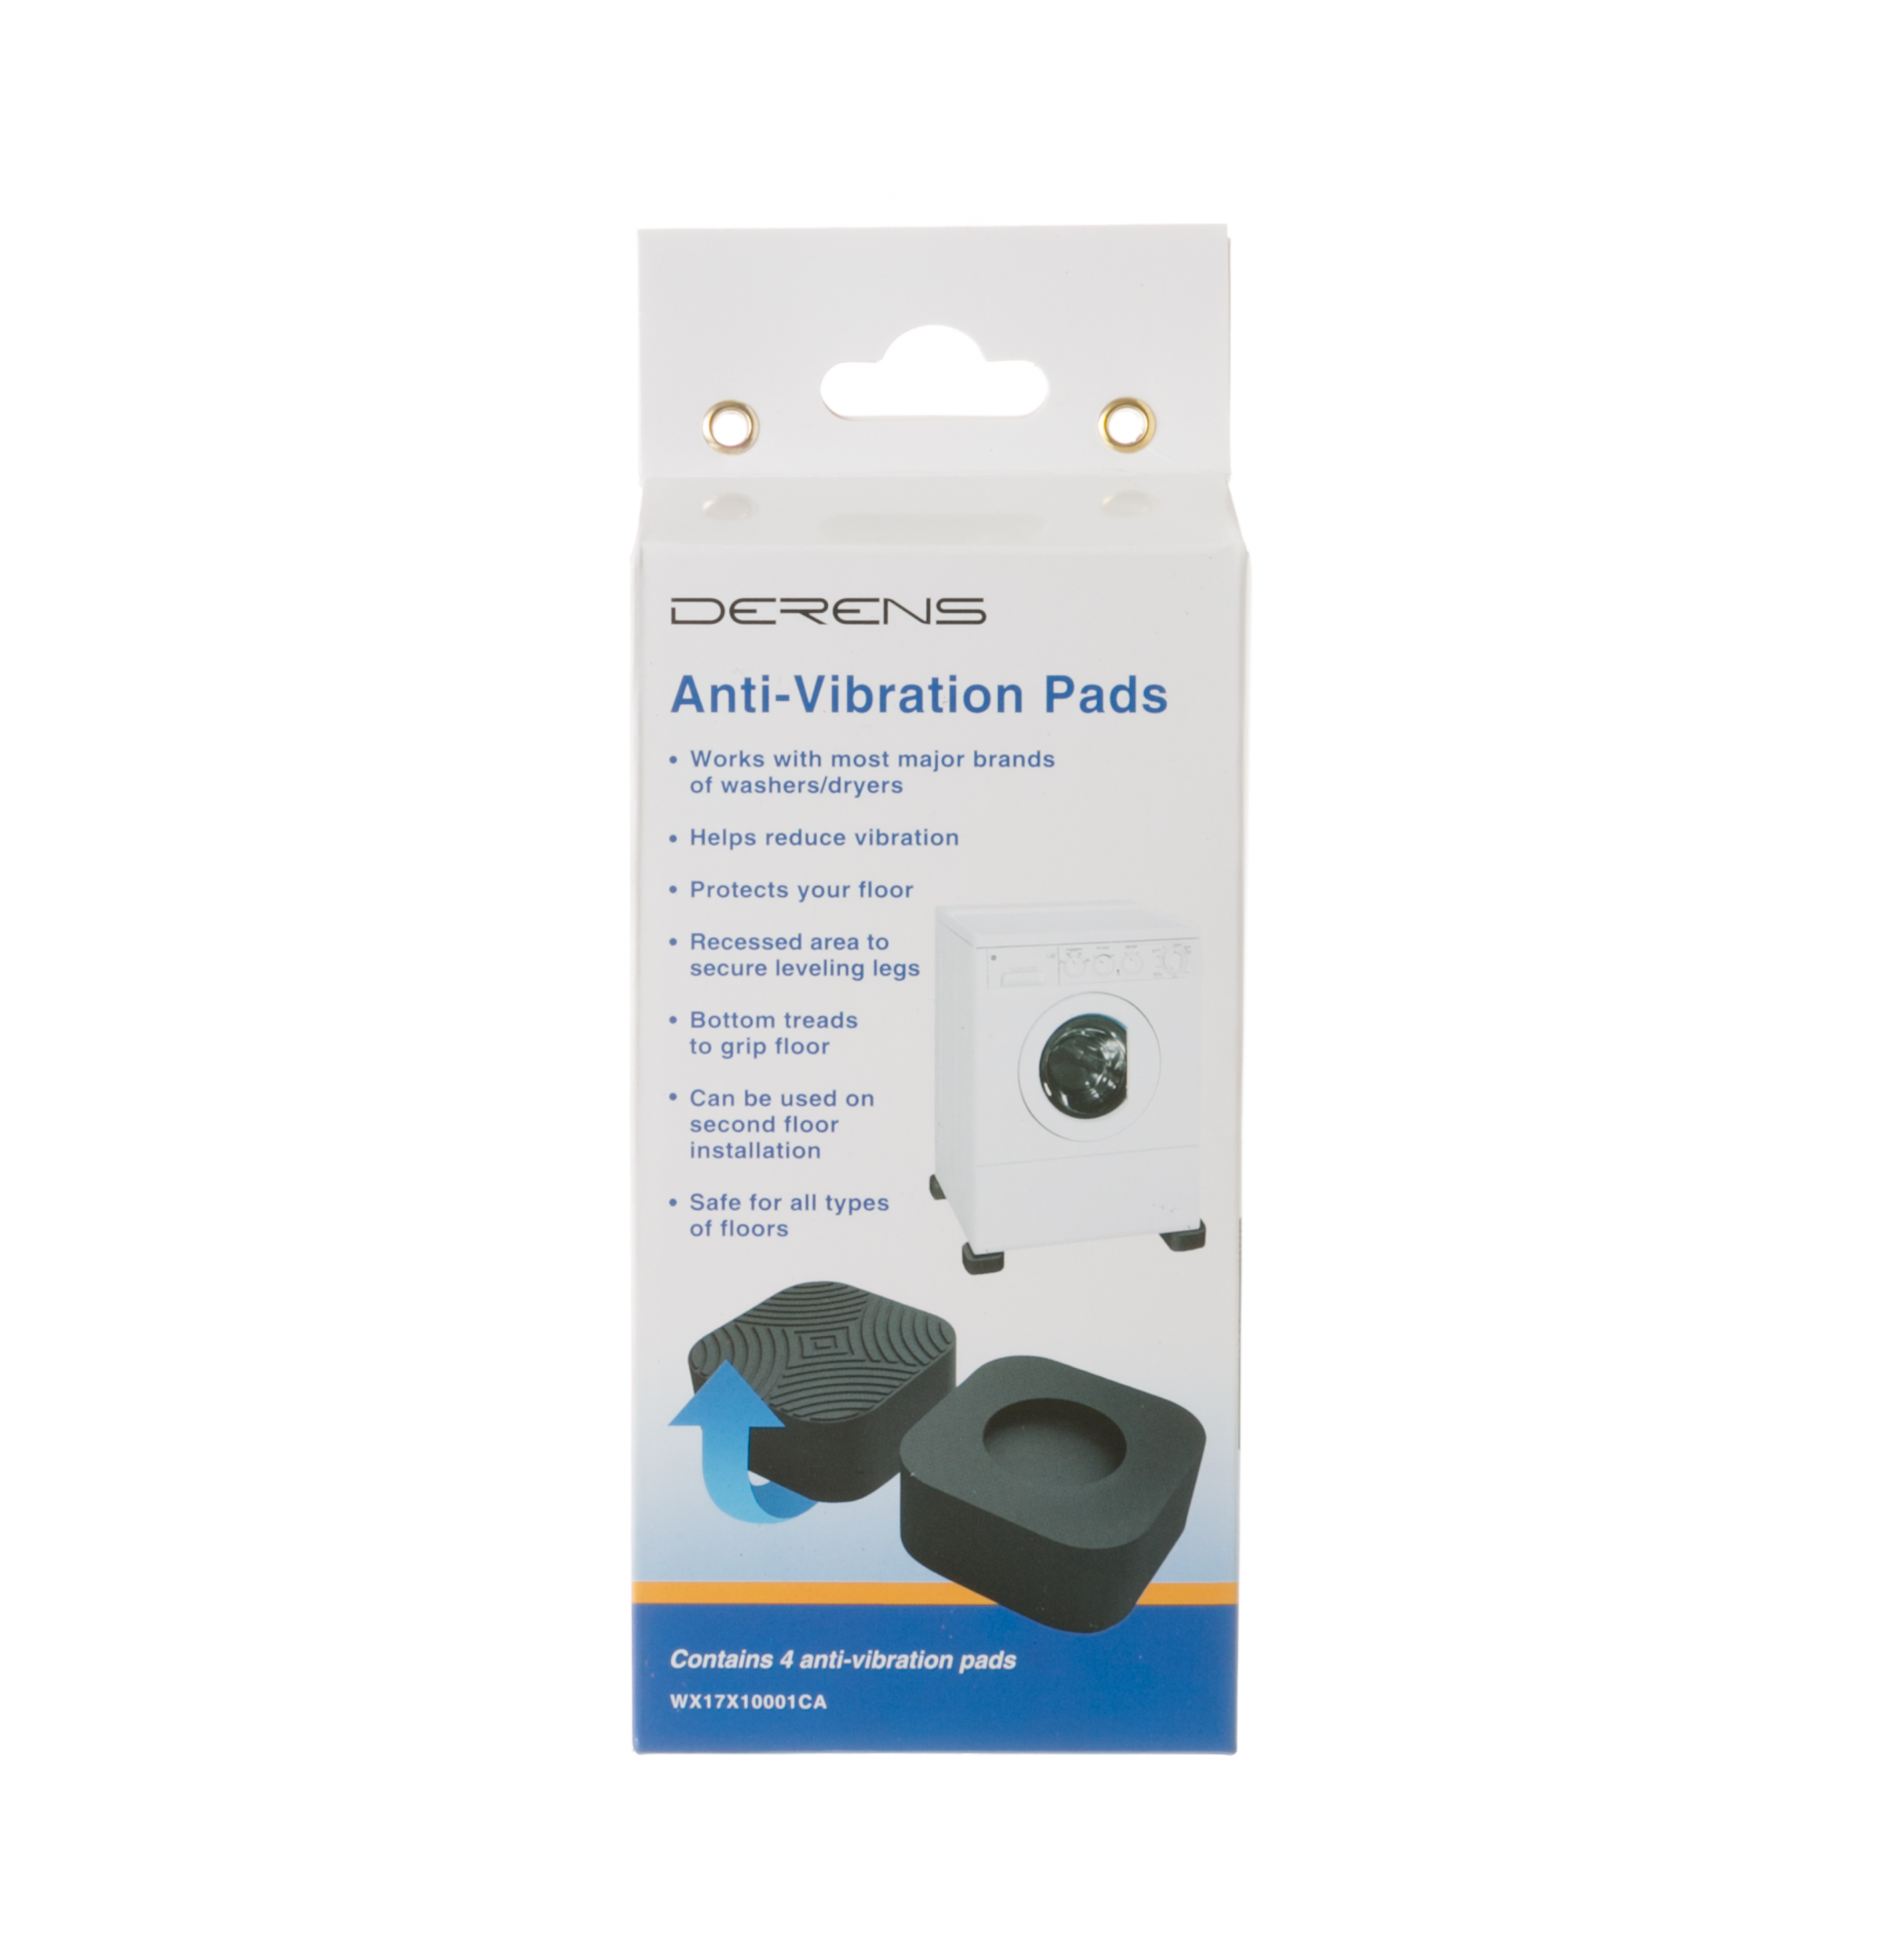 Wx17x10001ca Washer Dryer Anti Vibration Pads Contains